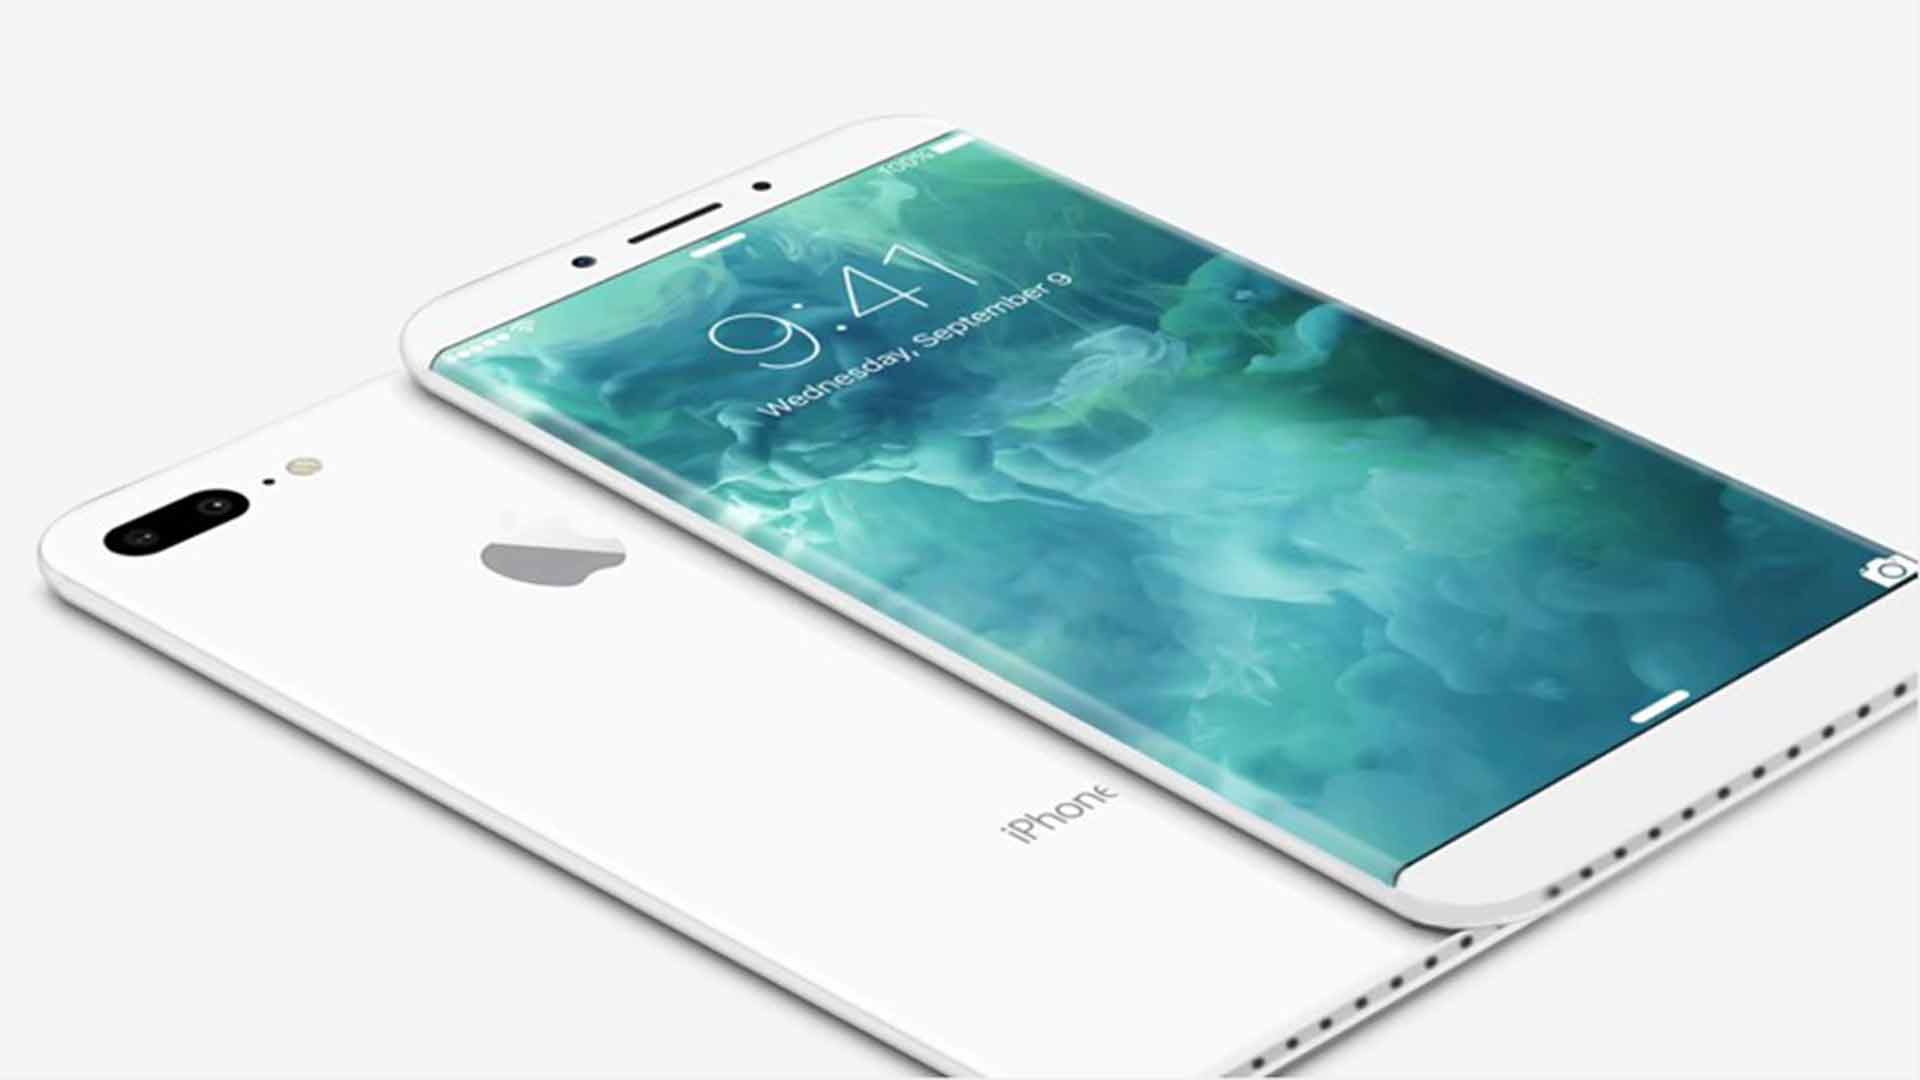 Vazou! Apple deve investir pesado no iPhone 8